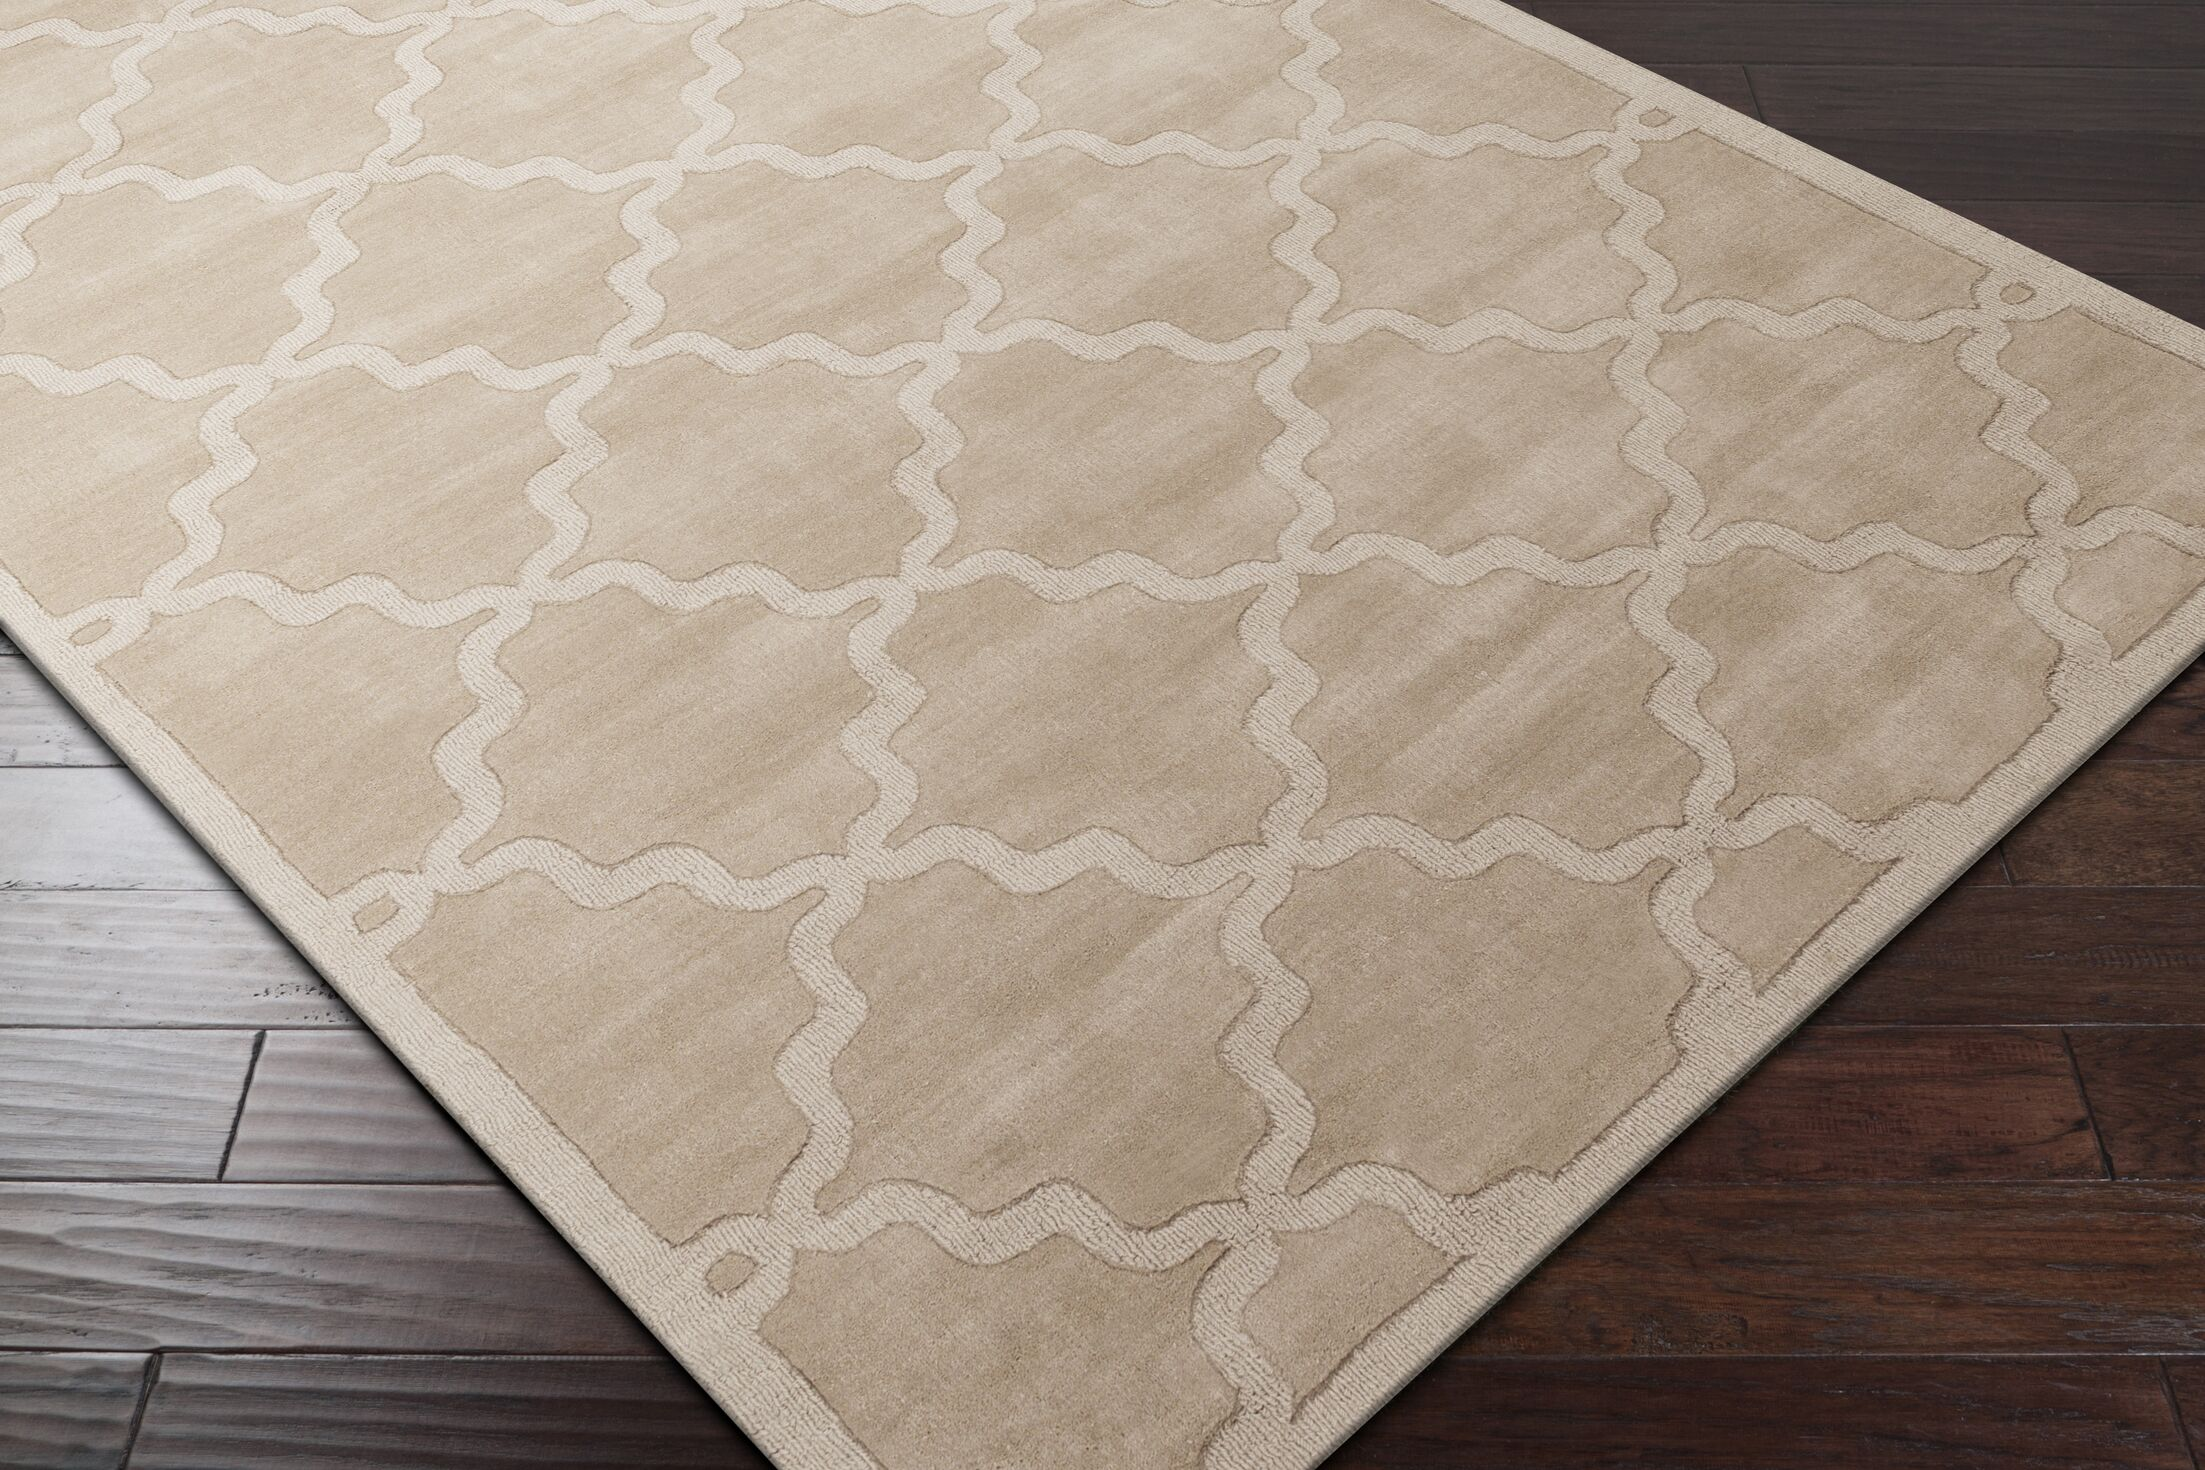 Blankenship Tan Geometric Abbey Area Rug Rug Size: Rectangle 6' x 9'